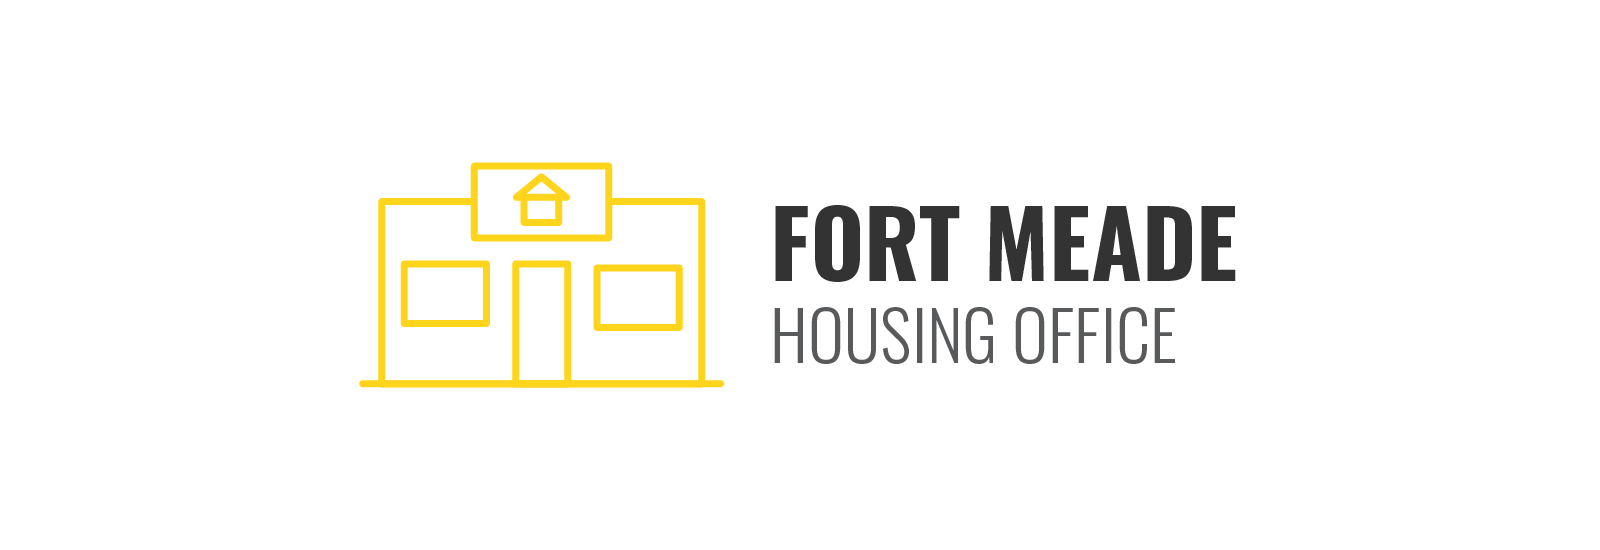 Fort Meade Housing Office